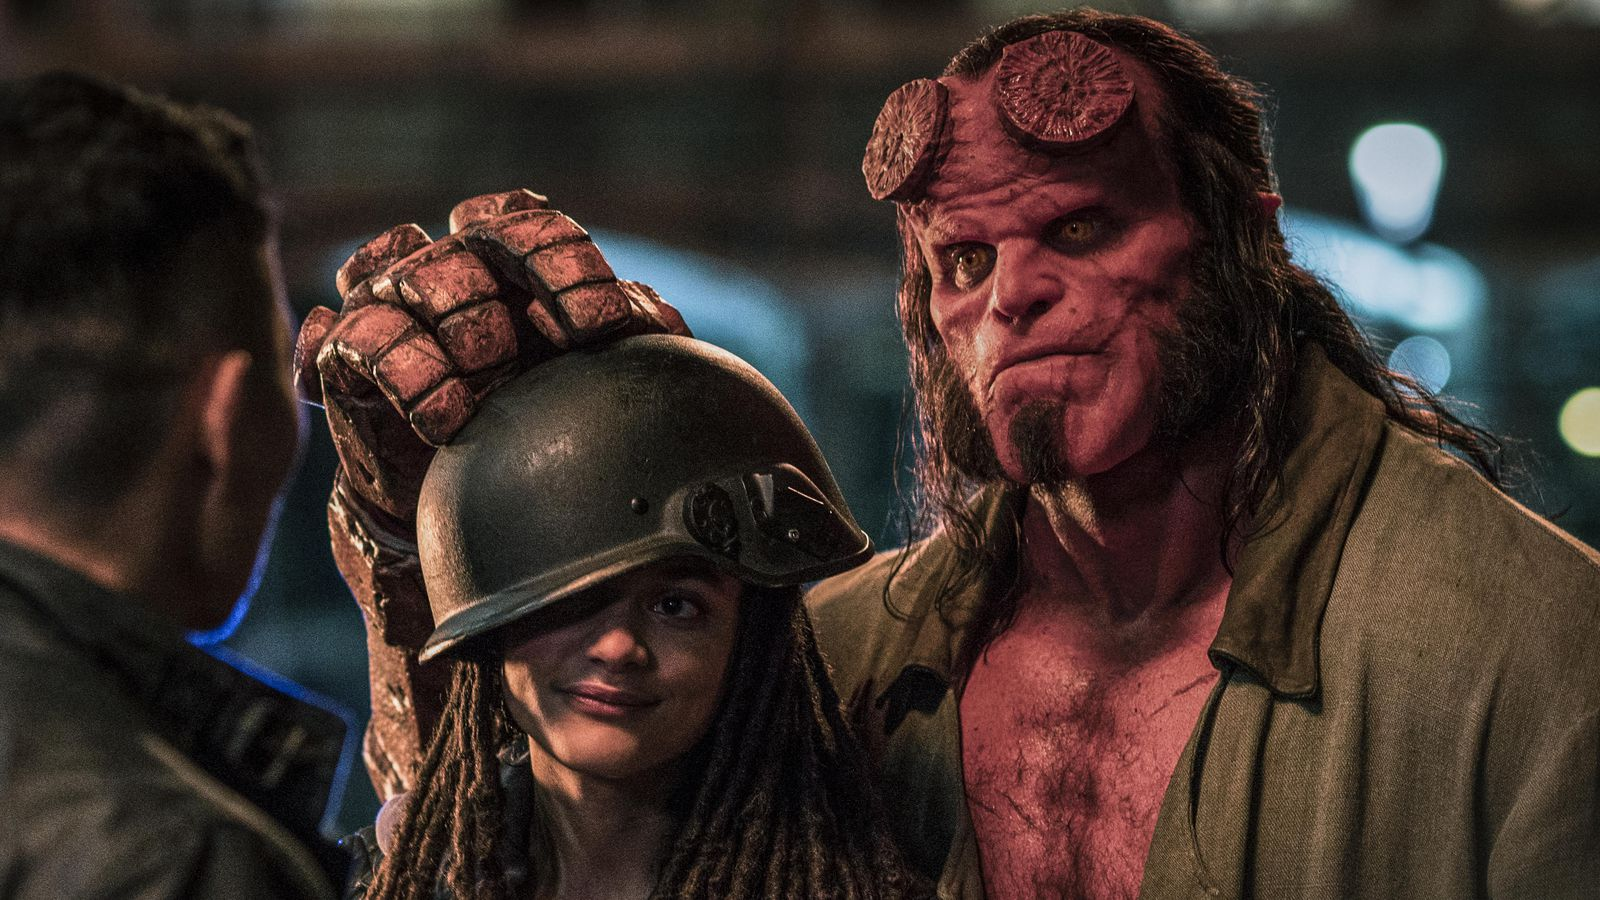 hellboy-2019-all-horror-movies-ranked-from-worst-to-best-cultural-hater